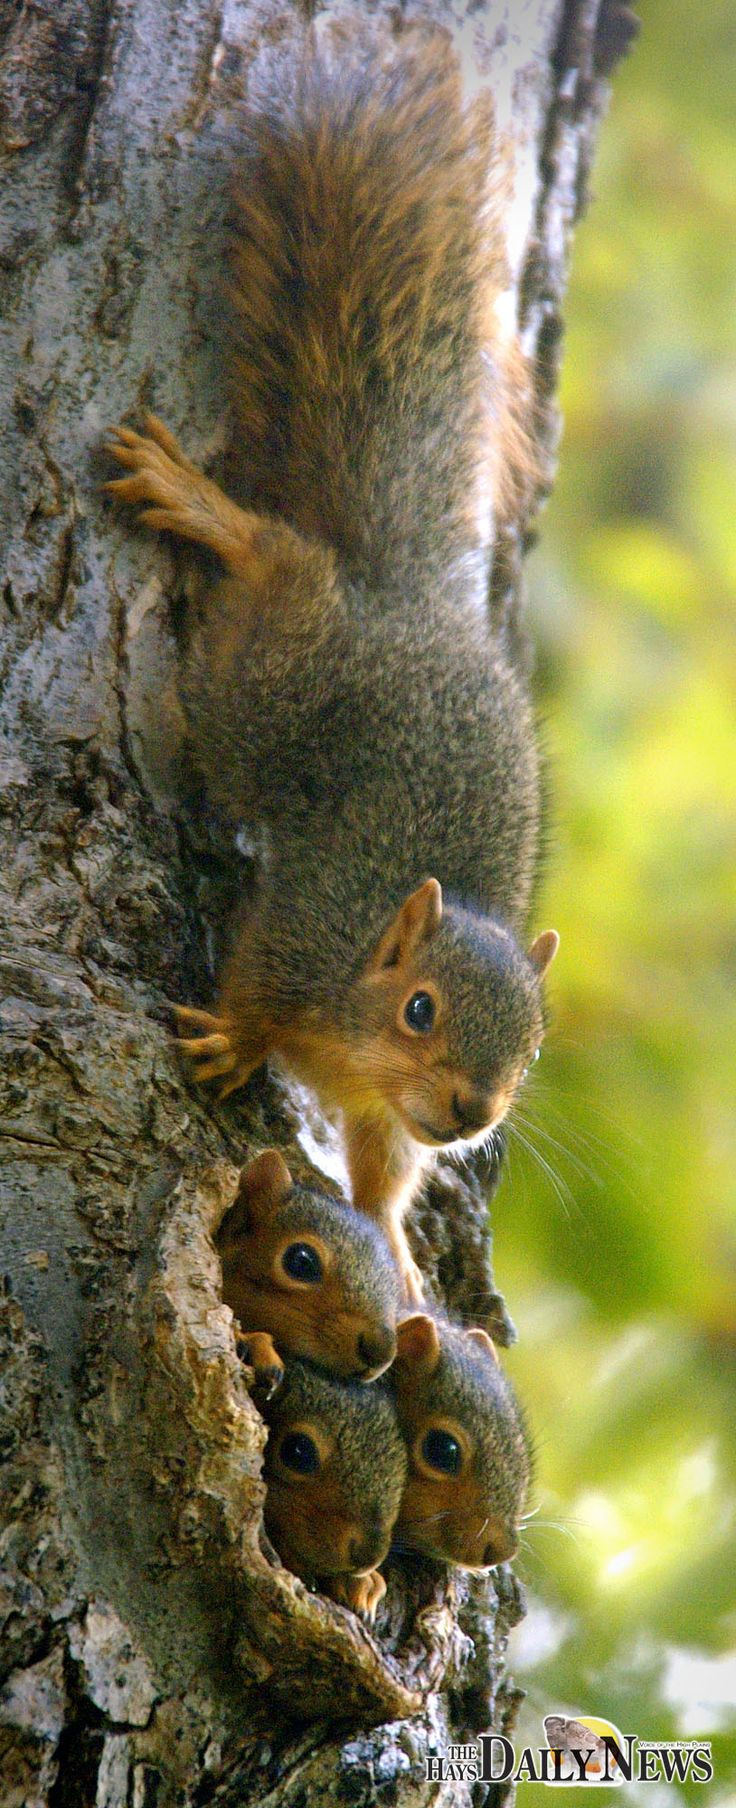 Recently, I repinned a photo of some baby squirrels because I thought it looked familiar, but THIS is the photo I was thinking of. Taken by @Steven Hausler of The Hays Daily News & pinned with his permission.